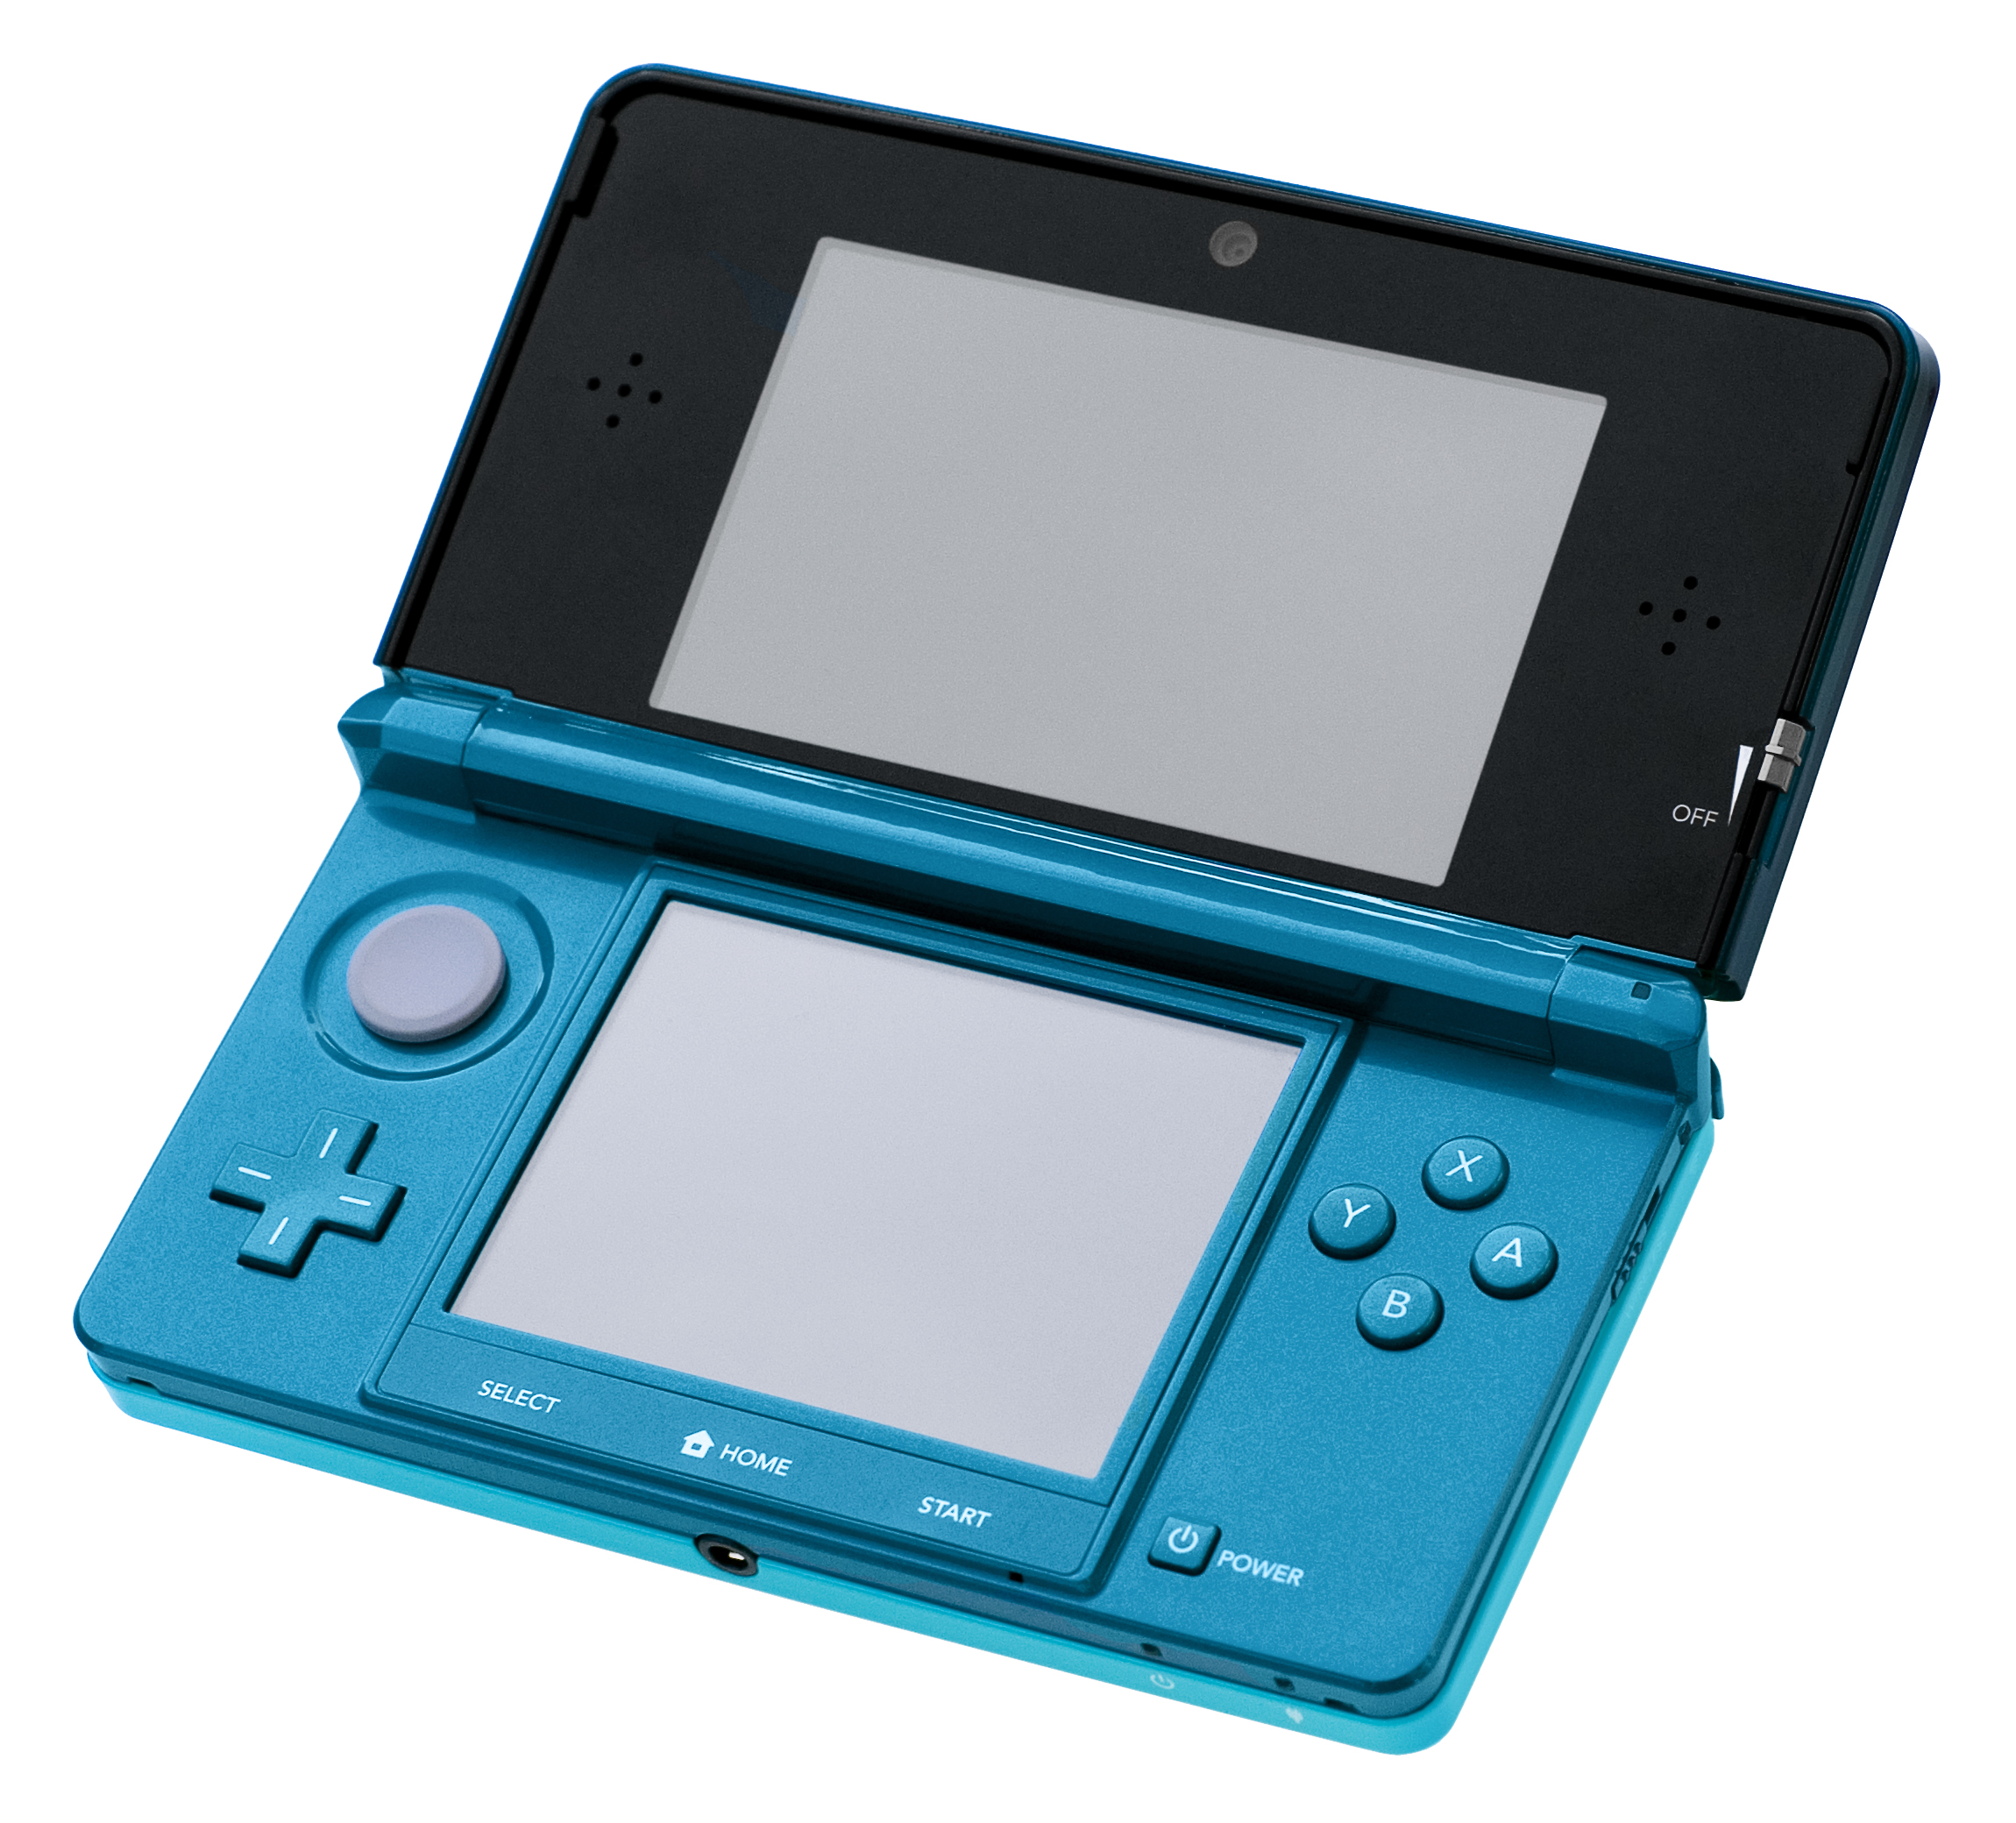 https://upload.wikimedia.org/wikipedia/commons/f/f0/Nintendo-3DS-AquaOpen.jpg